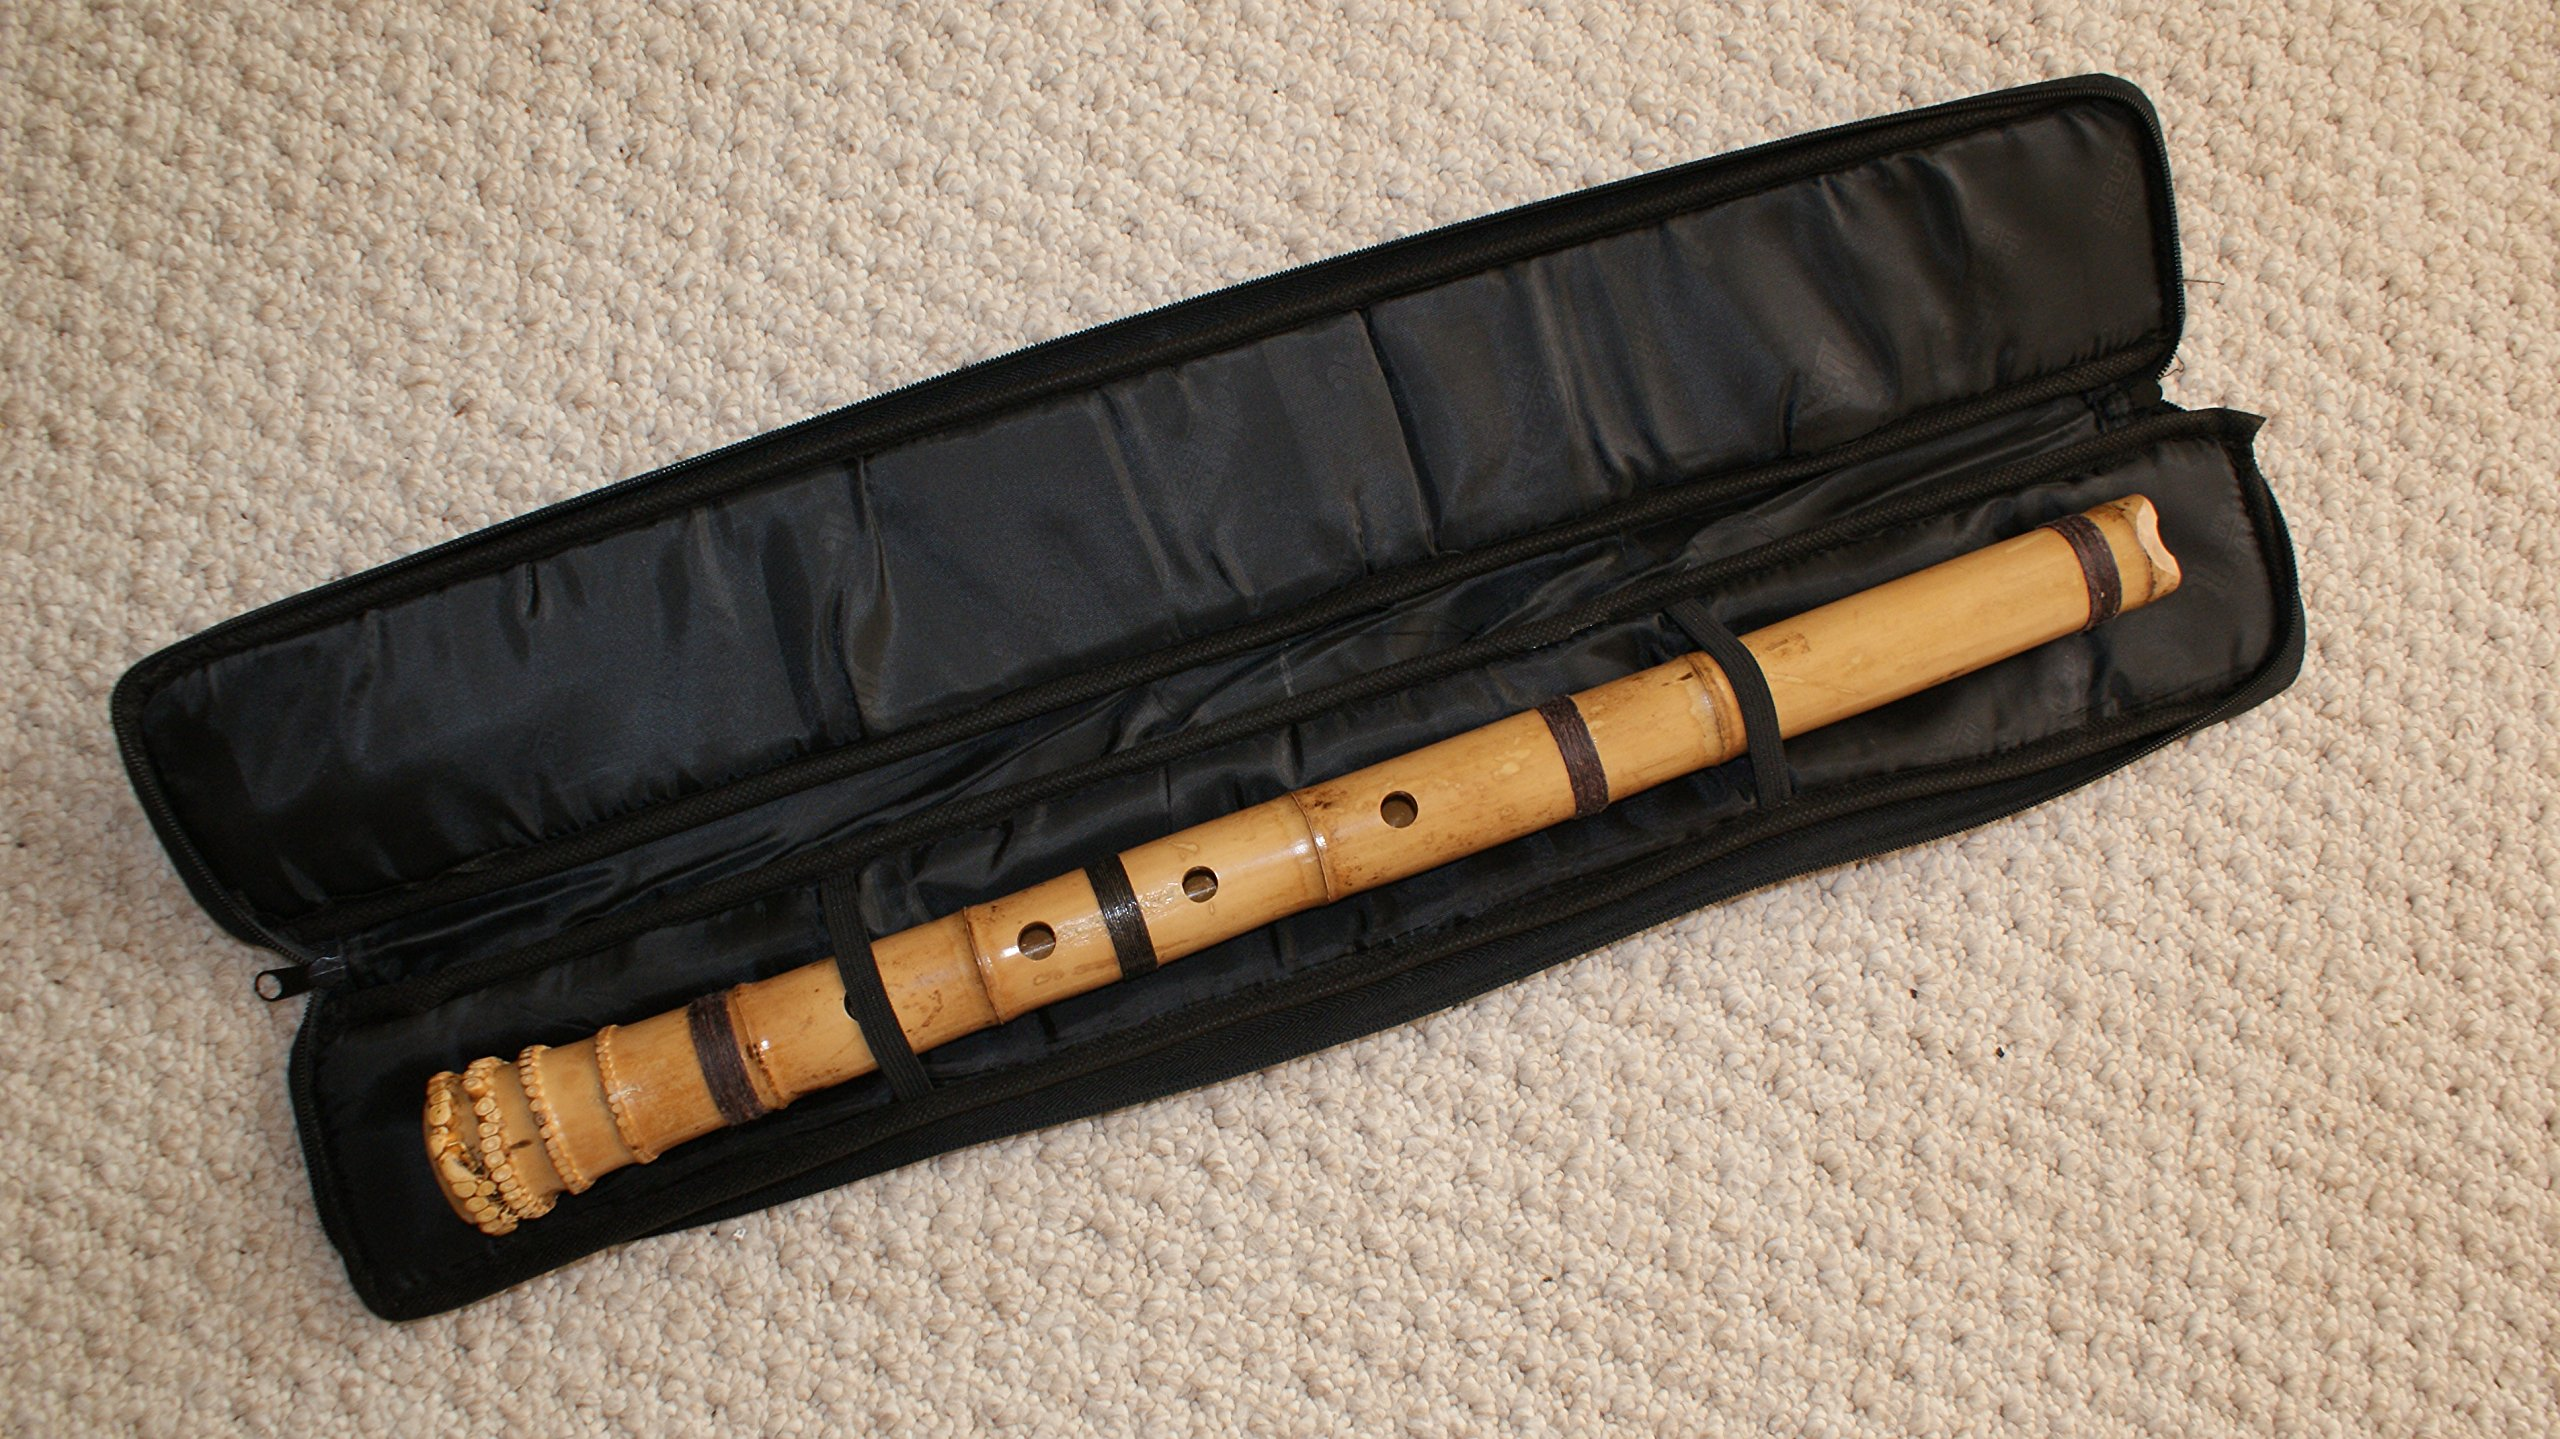 Black PE Sleeve Pouch Bag w. Zipper (26 X 4 inch) - for Bamboo Flutes/Shakuhachi ONLY, NOT for Clarinet (Too Short)